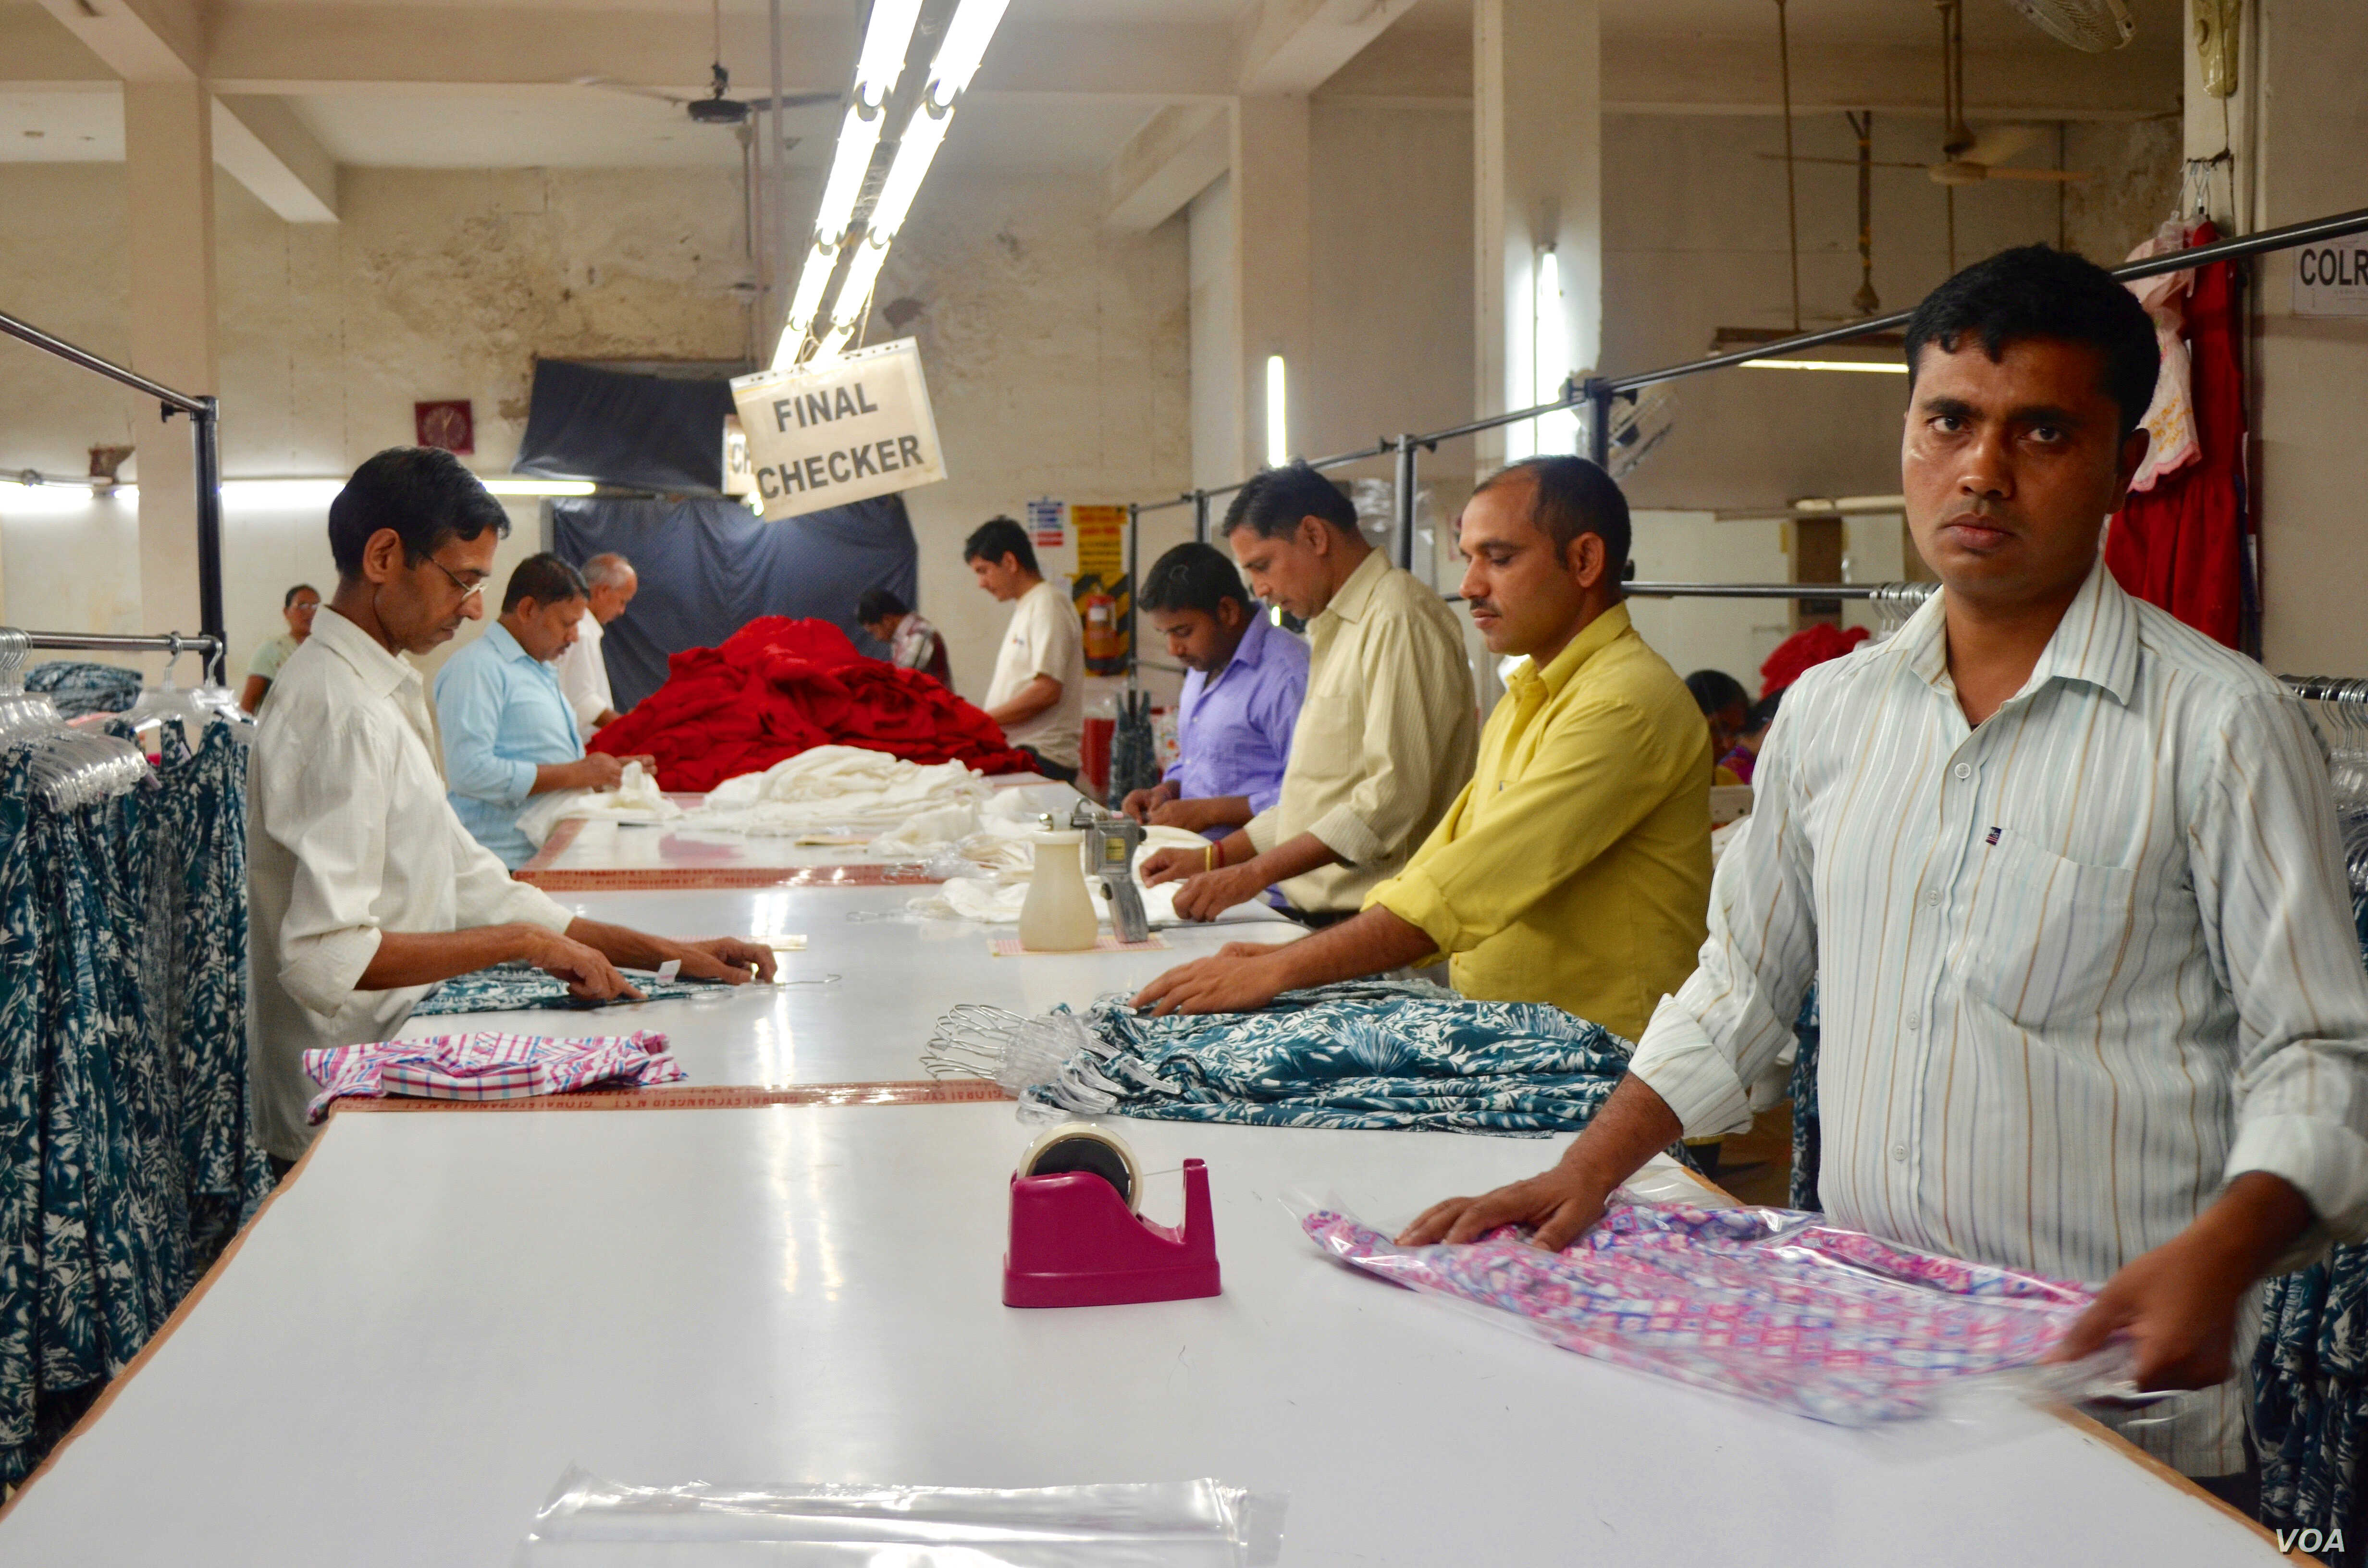 India's garment industry employs millions of people. (A. Pasricha/VOA)